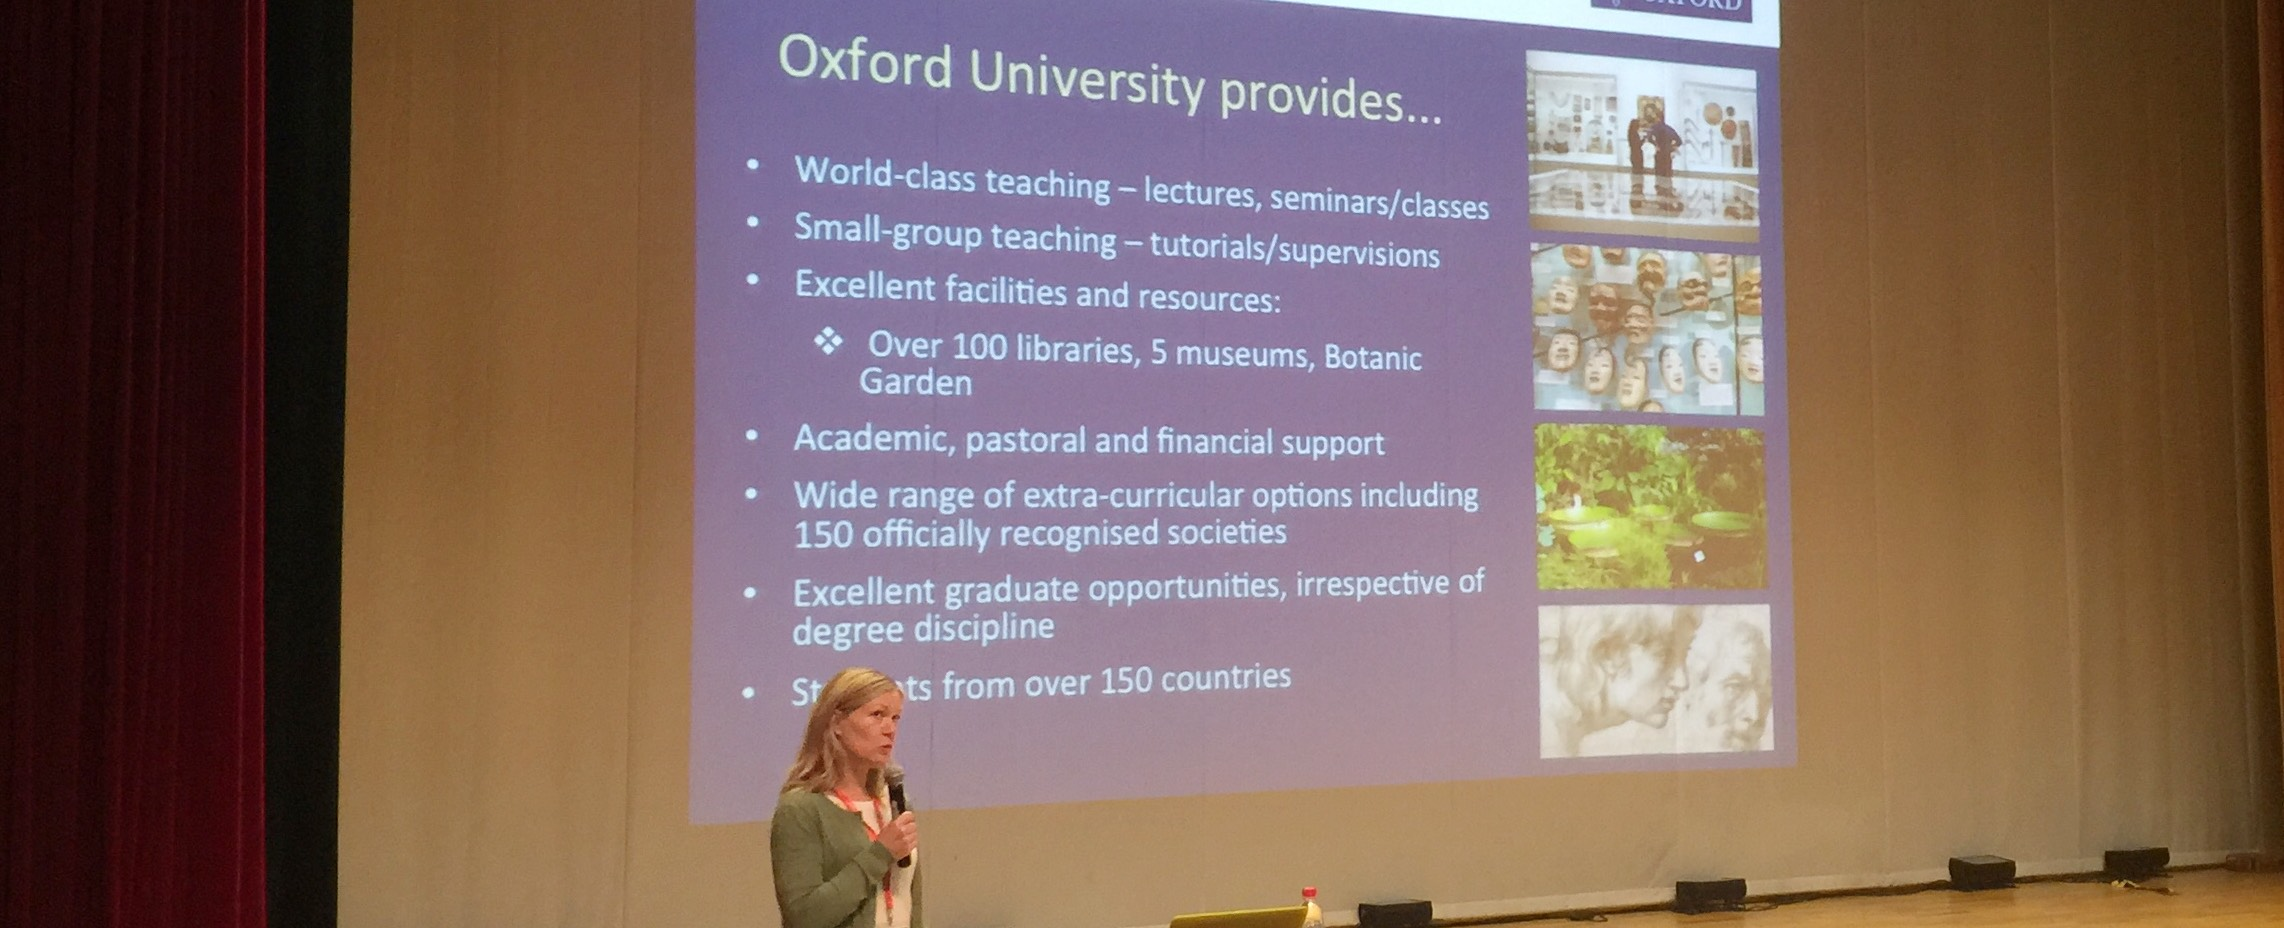 Ms Hamilton, Undergraduate Student Recruitment Officer East-Asia for University of Oxford, presents at Dulwich Suzhou